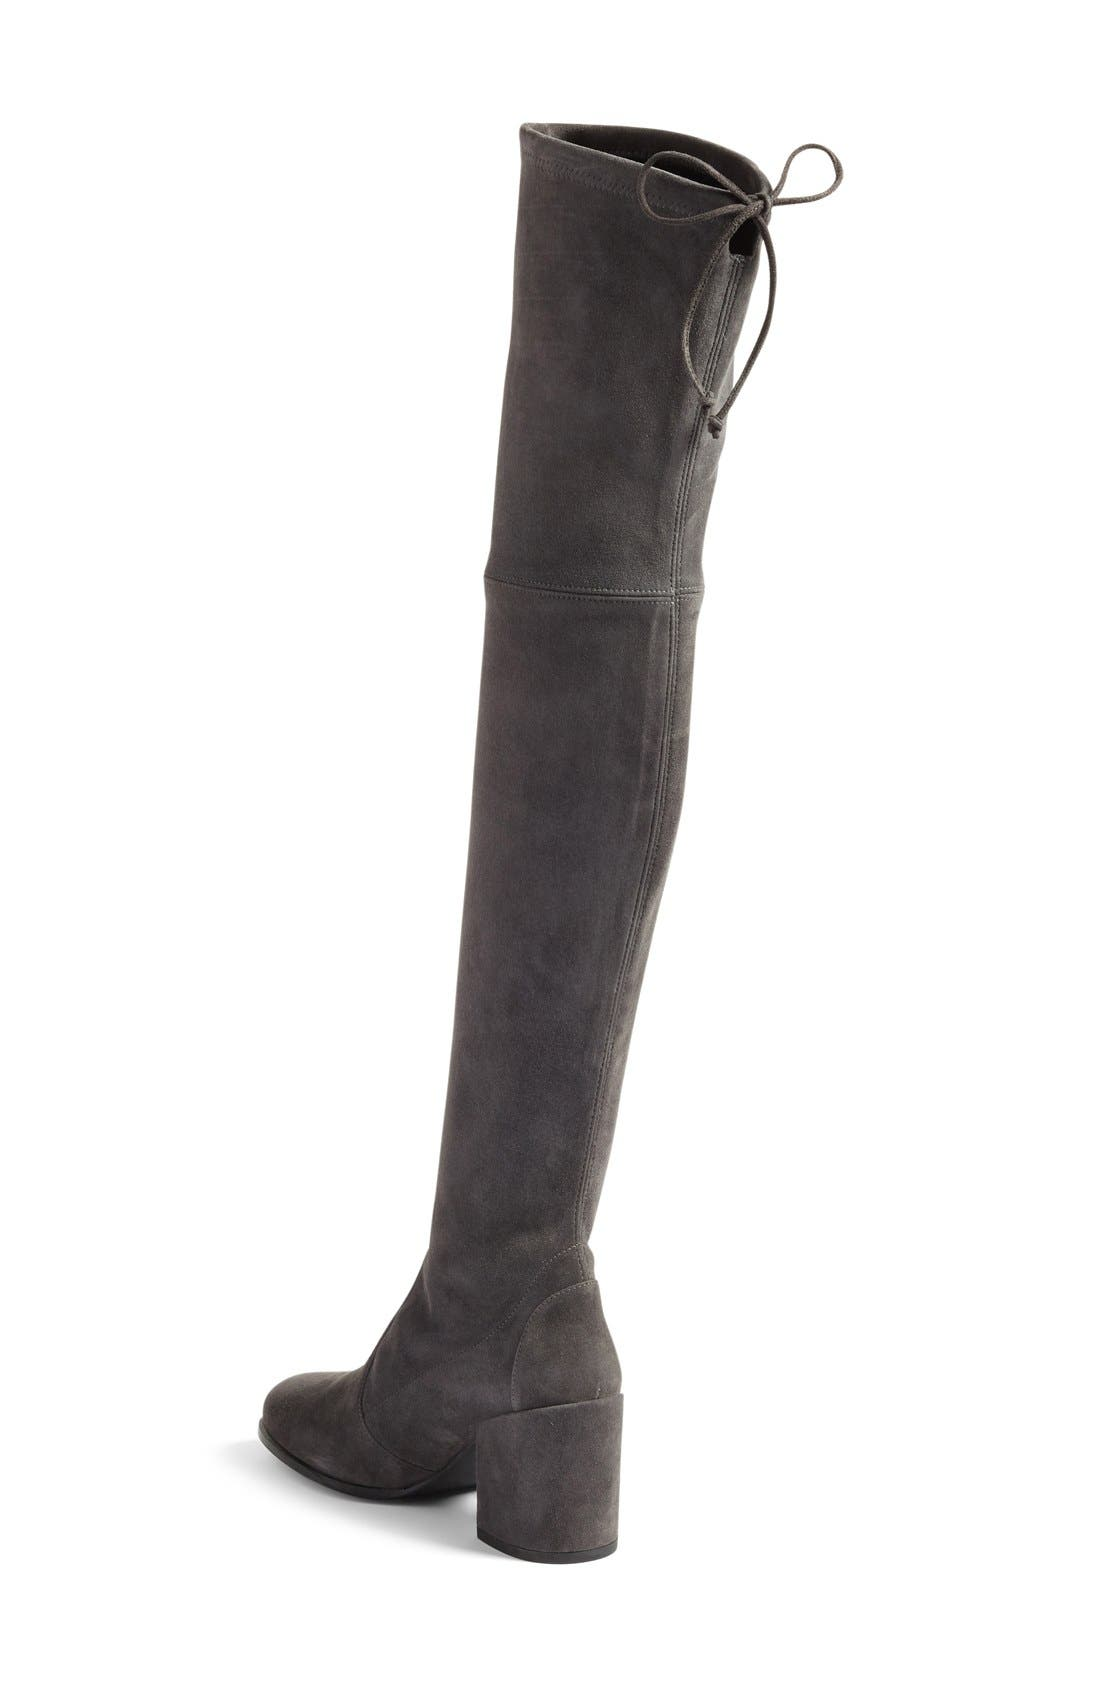 Tieland Over the Knee Boot,                             Alternate thumbnail 14, color,